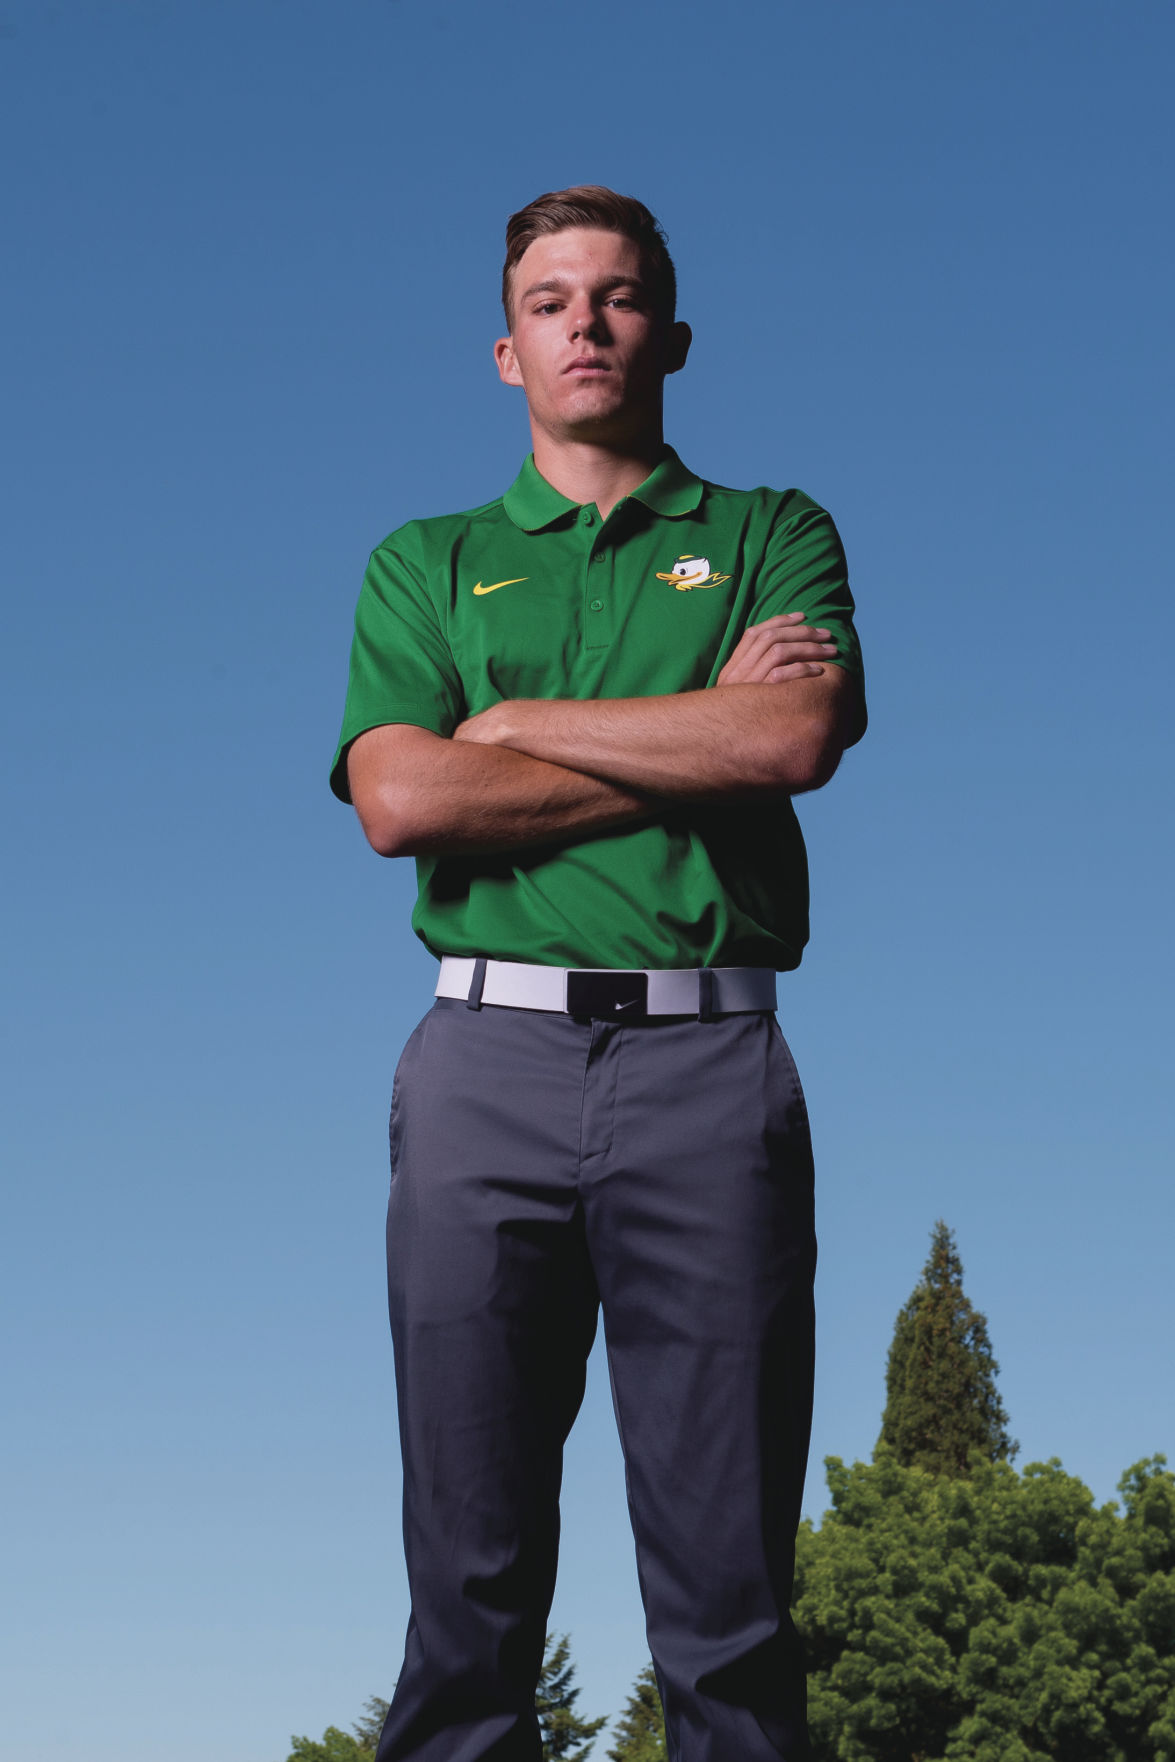 Oregon golf's Aaron Wise takes aim at NCAA Championships before turning professional